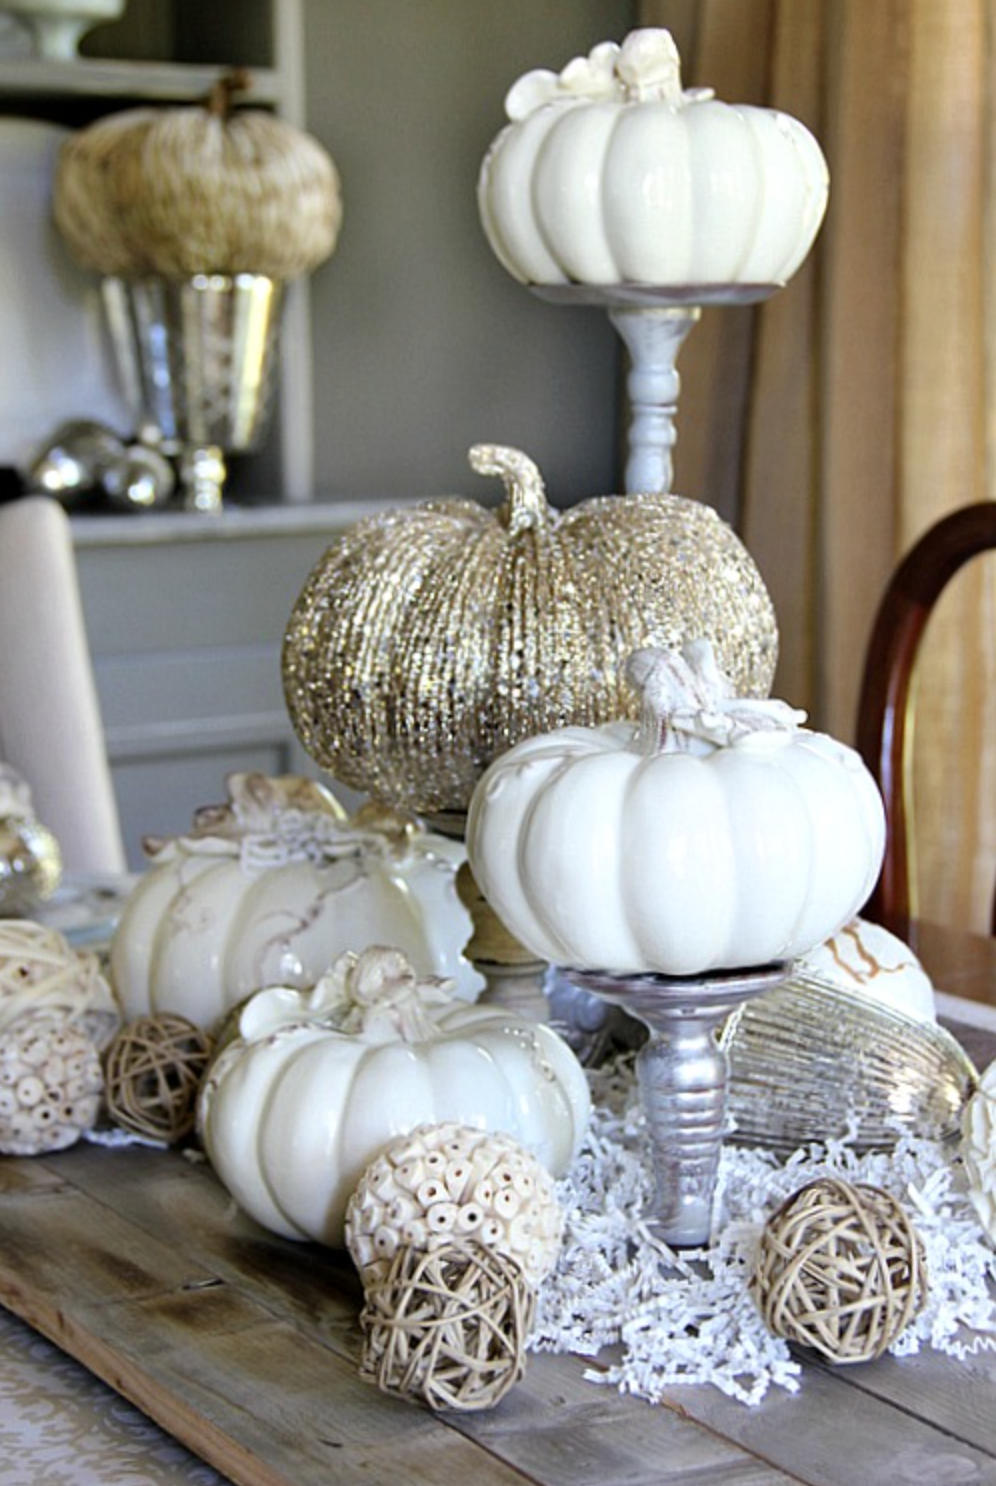 Ceramic Pumpkin Display with Mismatched Candlestick Risers